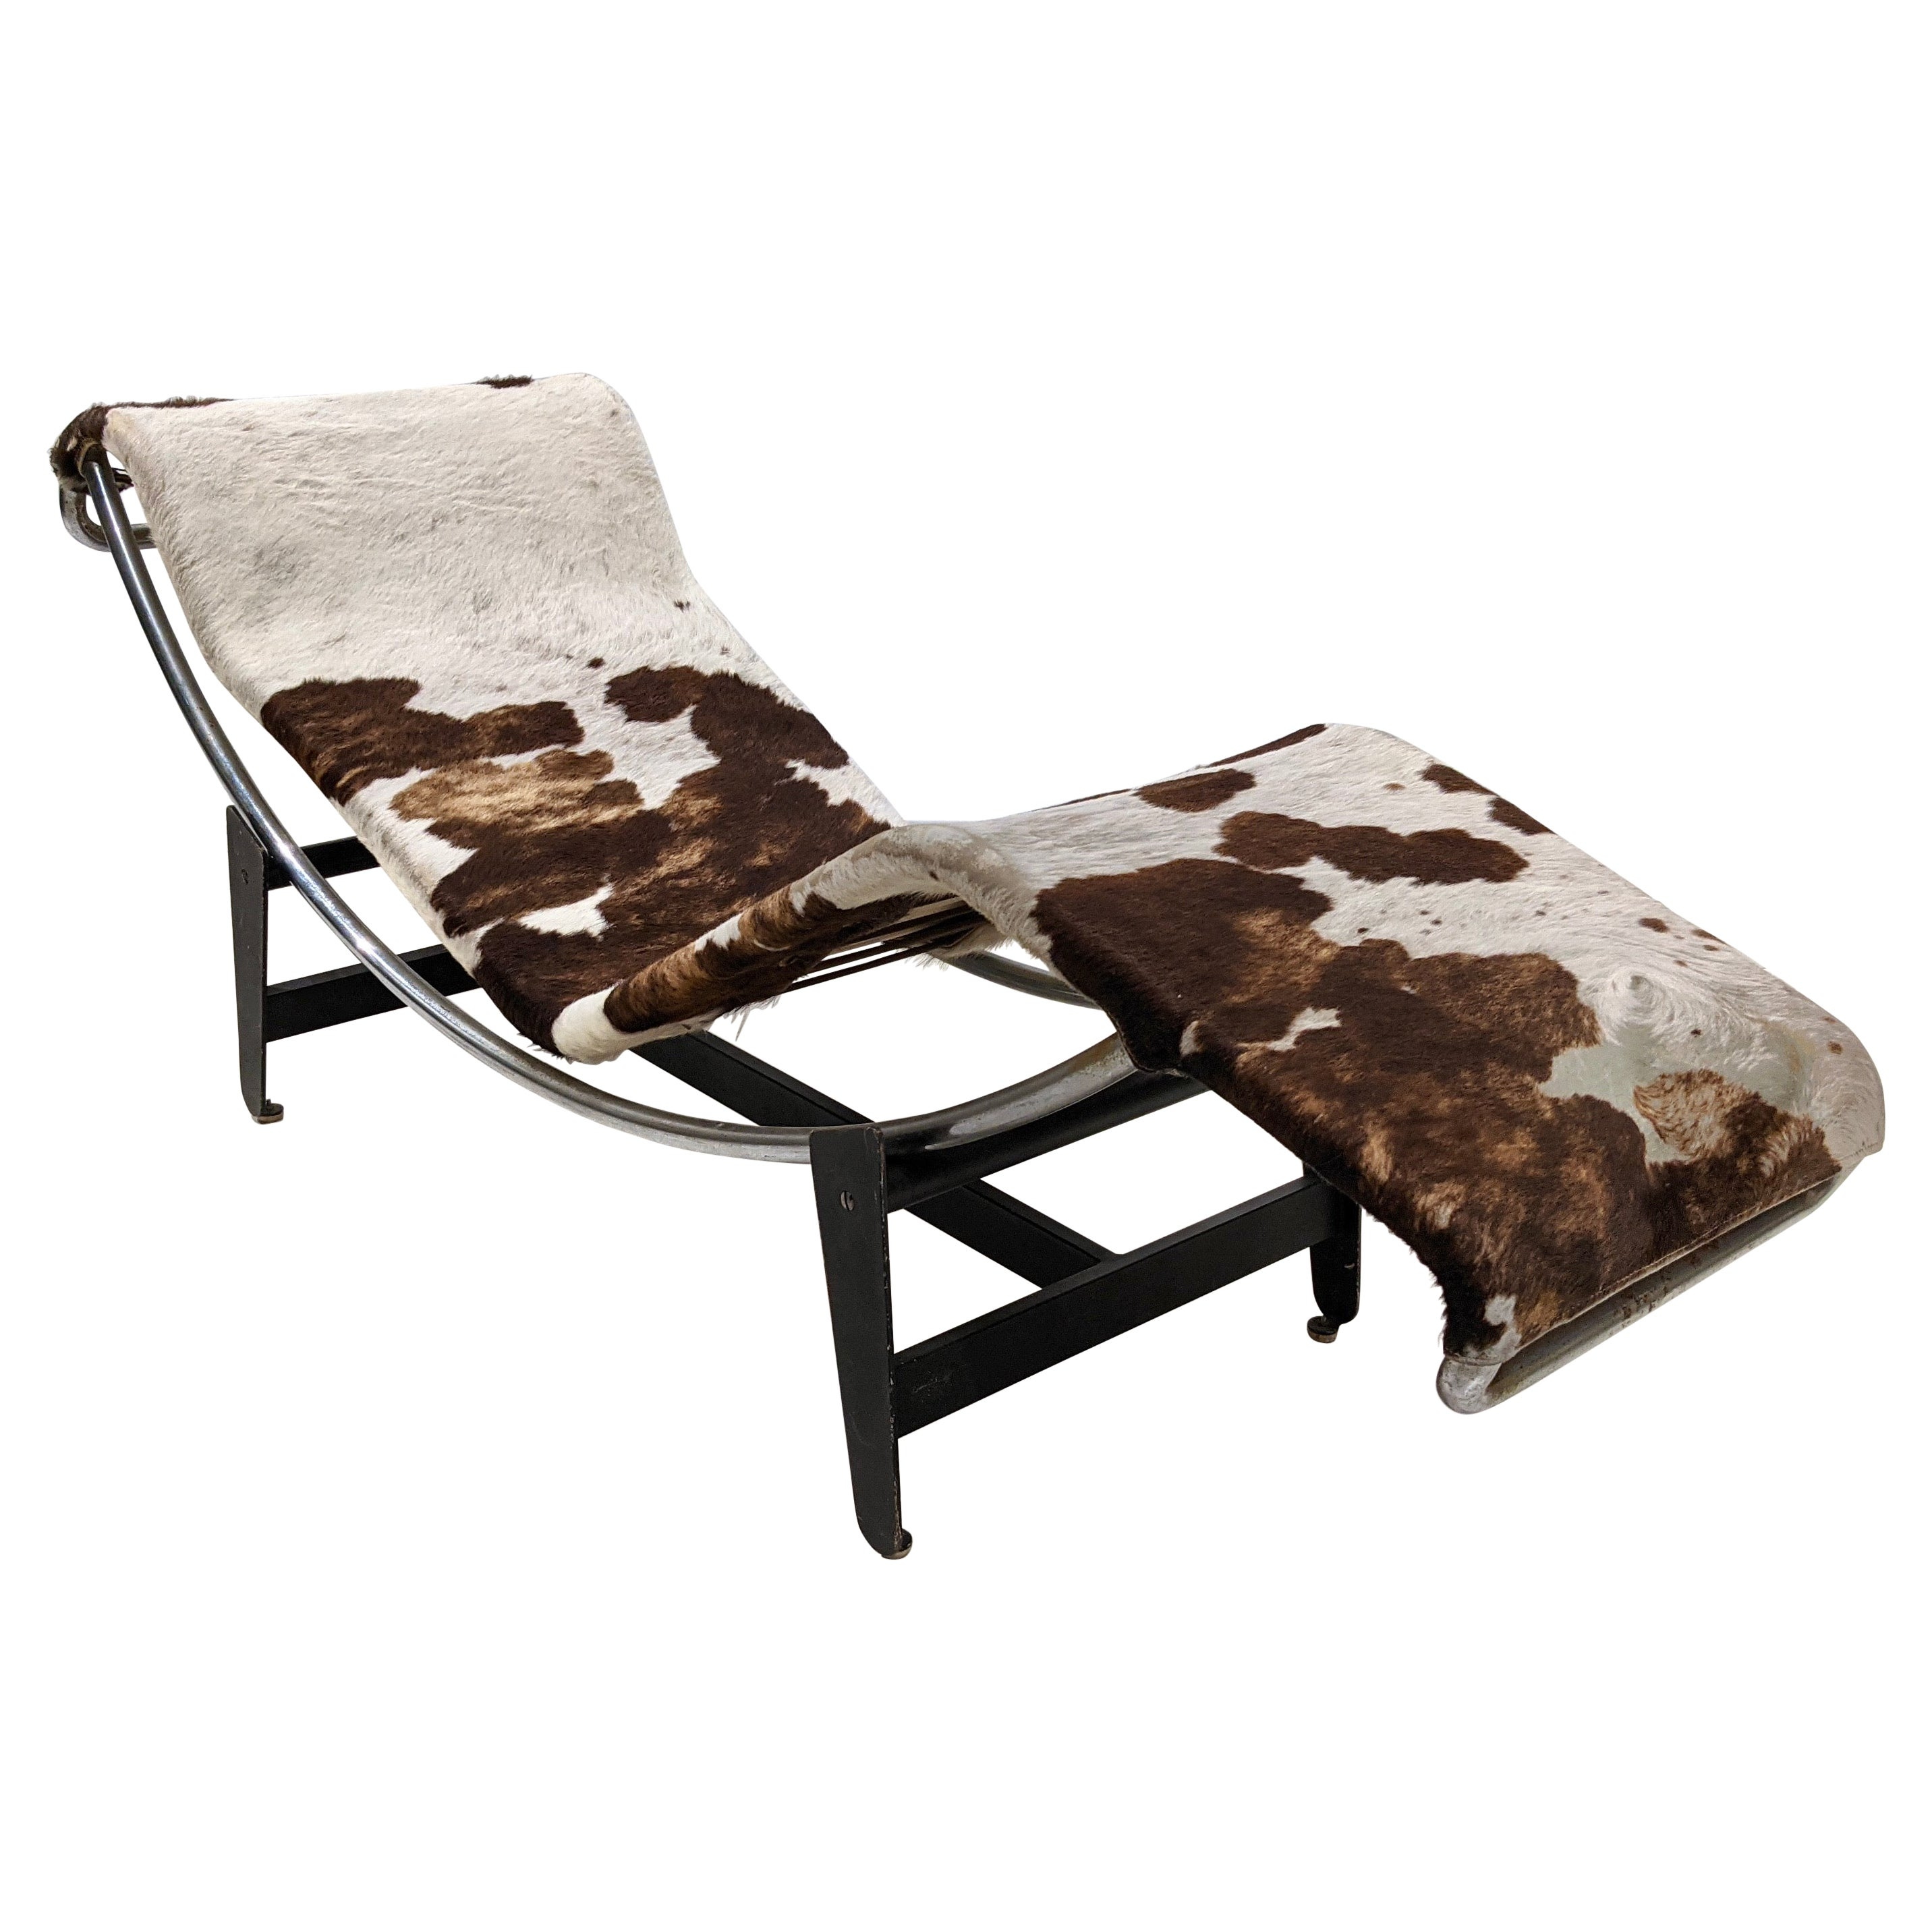 LC4 chaise longue by Le Corbusier and Charlotte Perriand